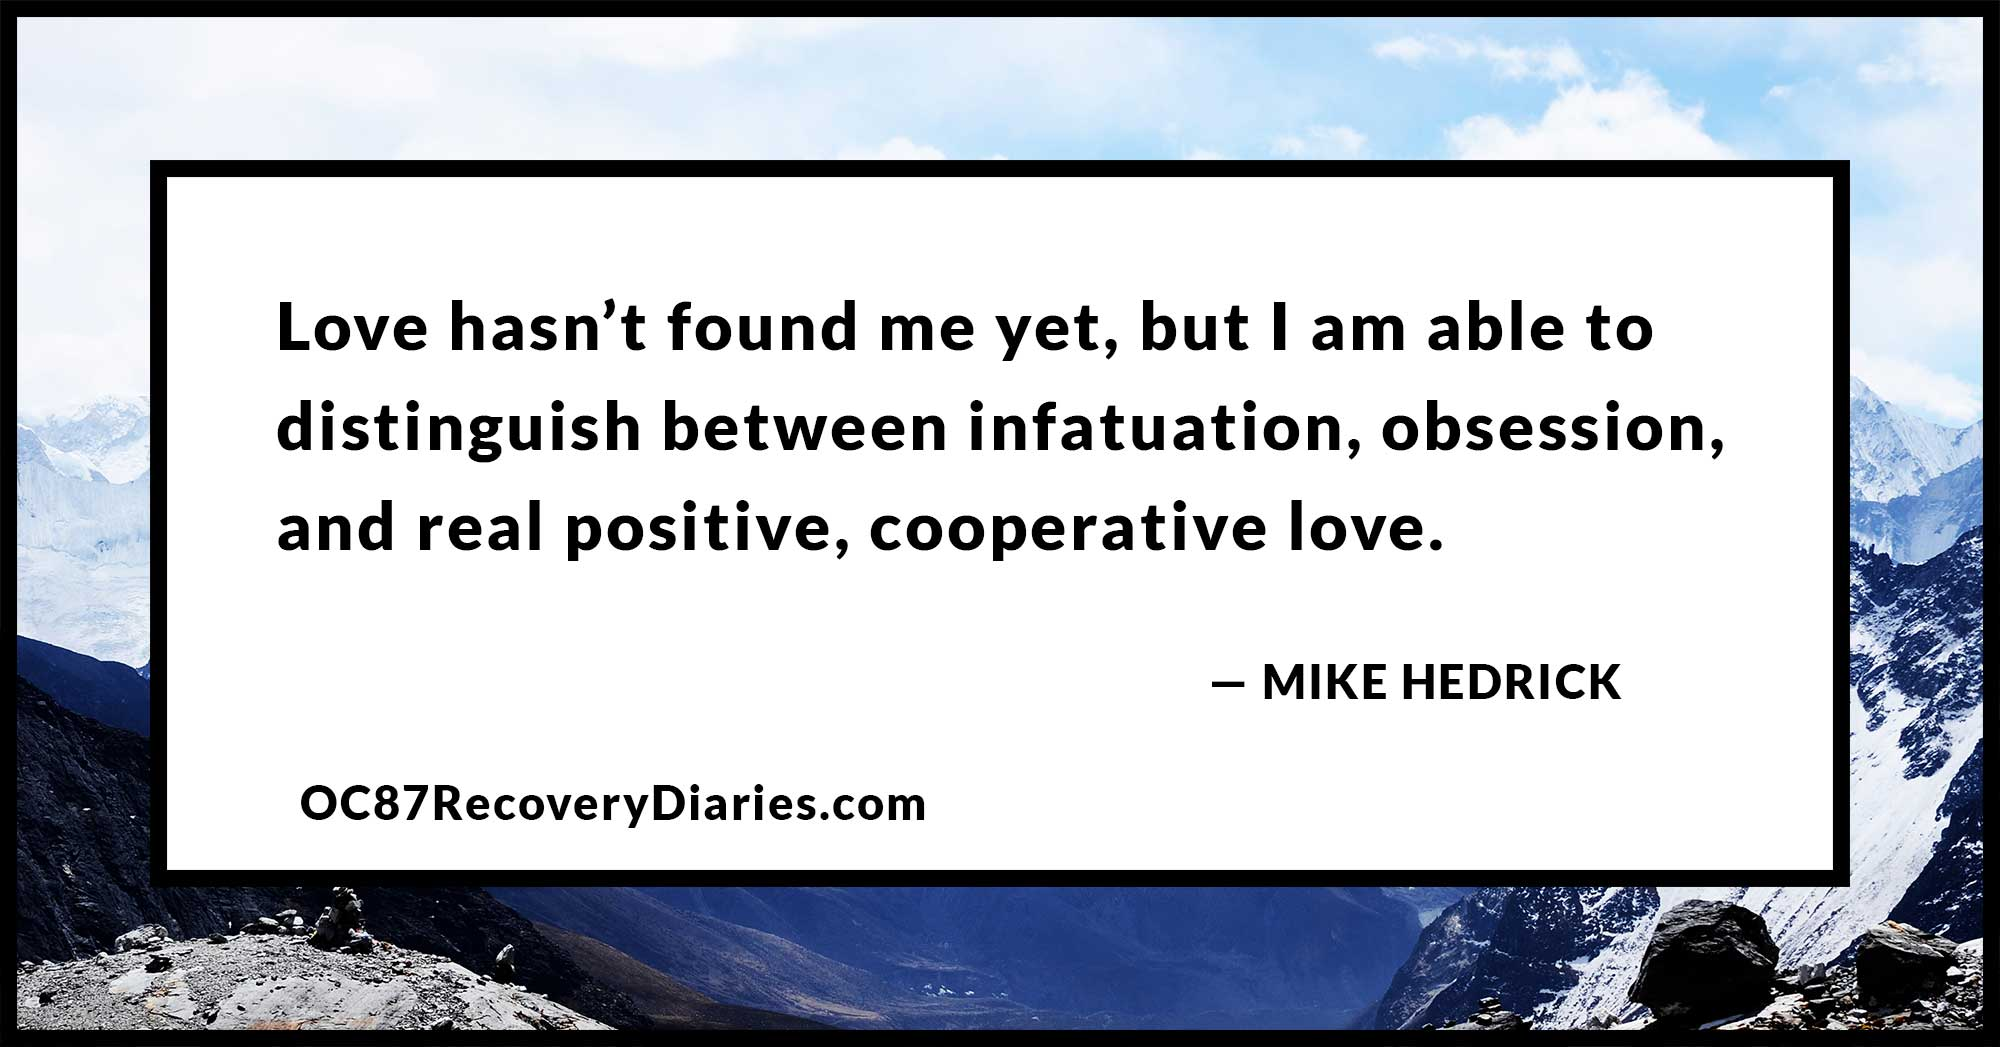 schizophrenia and love by mike hedrick on oc recovery diaries the bottom line love is hard especially for a person schizophrenia but i have hope